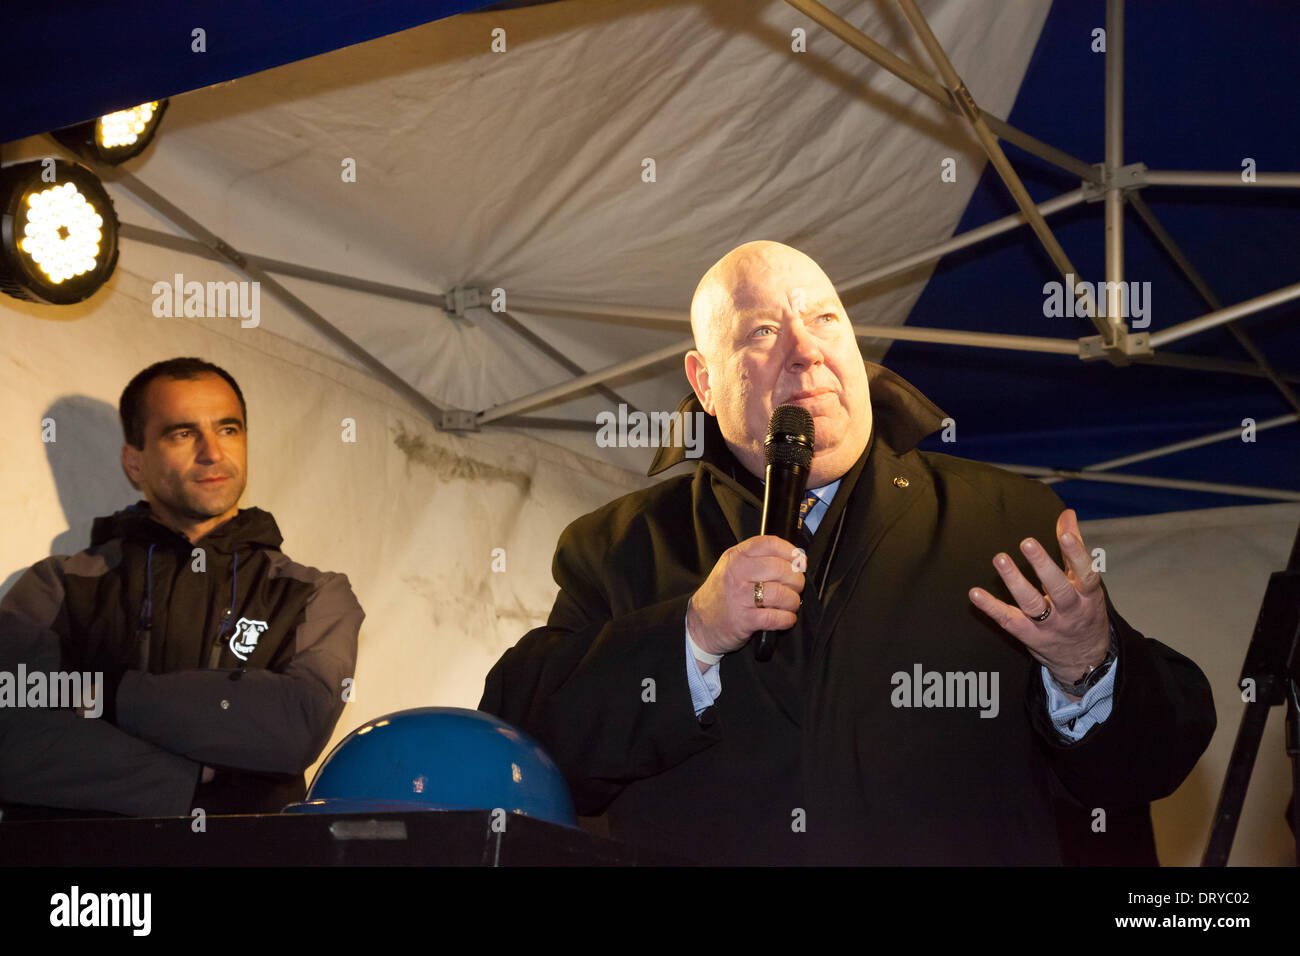 Liverpool, UK. 4th February 2014. Everton manager Roberto Martinez looks on as Liverpool Mayor Joe Anderson delivers a speech. They were both in the Everton district of Liverpool to switch on an illuminated Everton crest. Credit:  Adam Vaughan/Alamy Live News - Stock Image